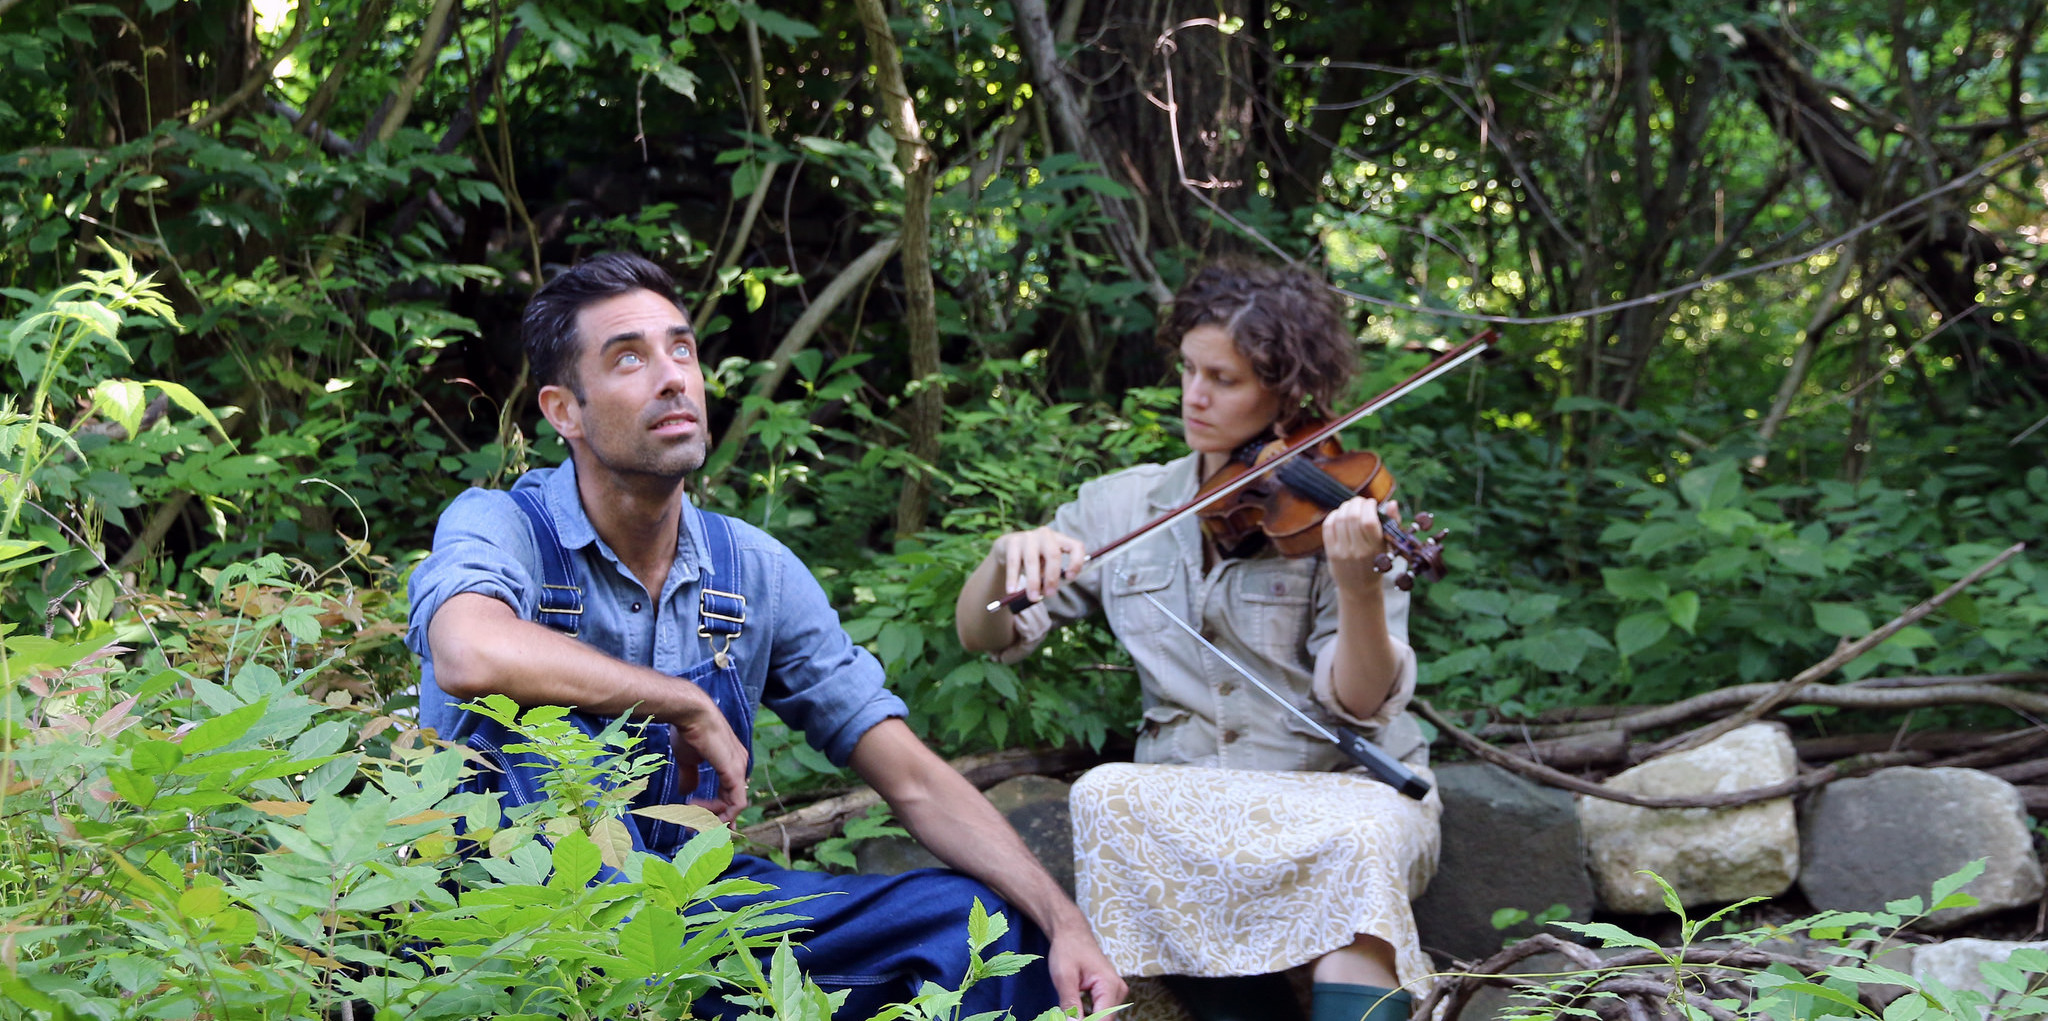 Robert Maril and Bonnie Lander in Erik Spangler's  Cantata For A Loop Trail  (2014)